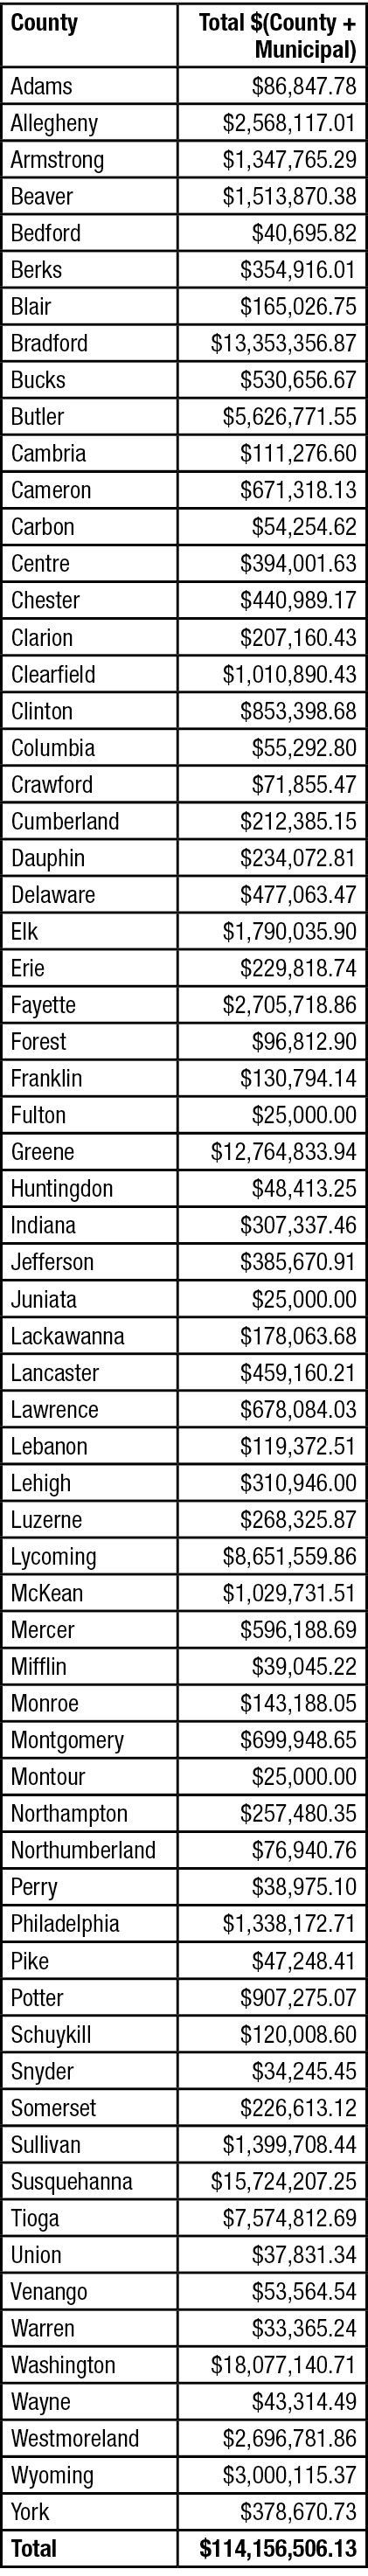 2019 Impact Fees Collected by Pennsylvania Counties